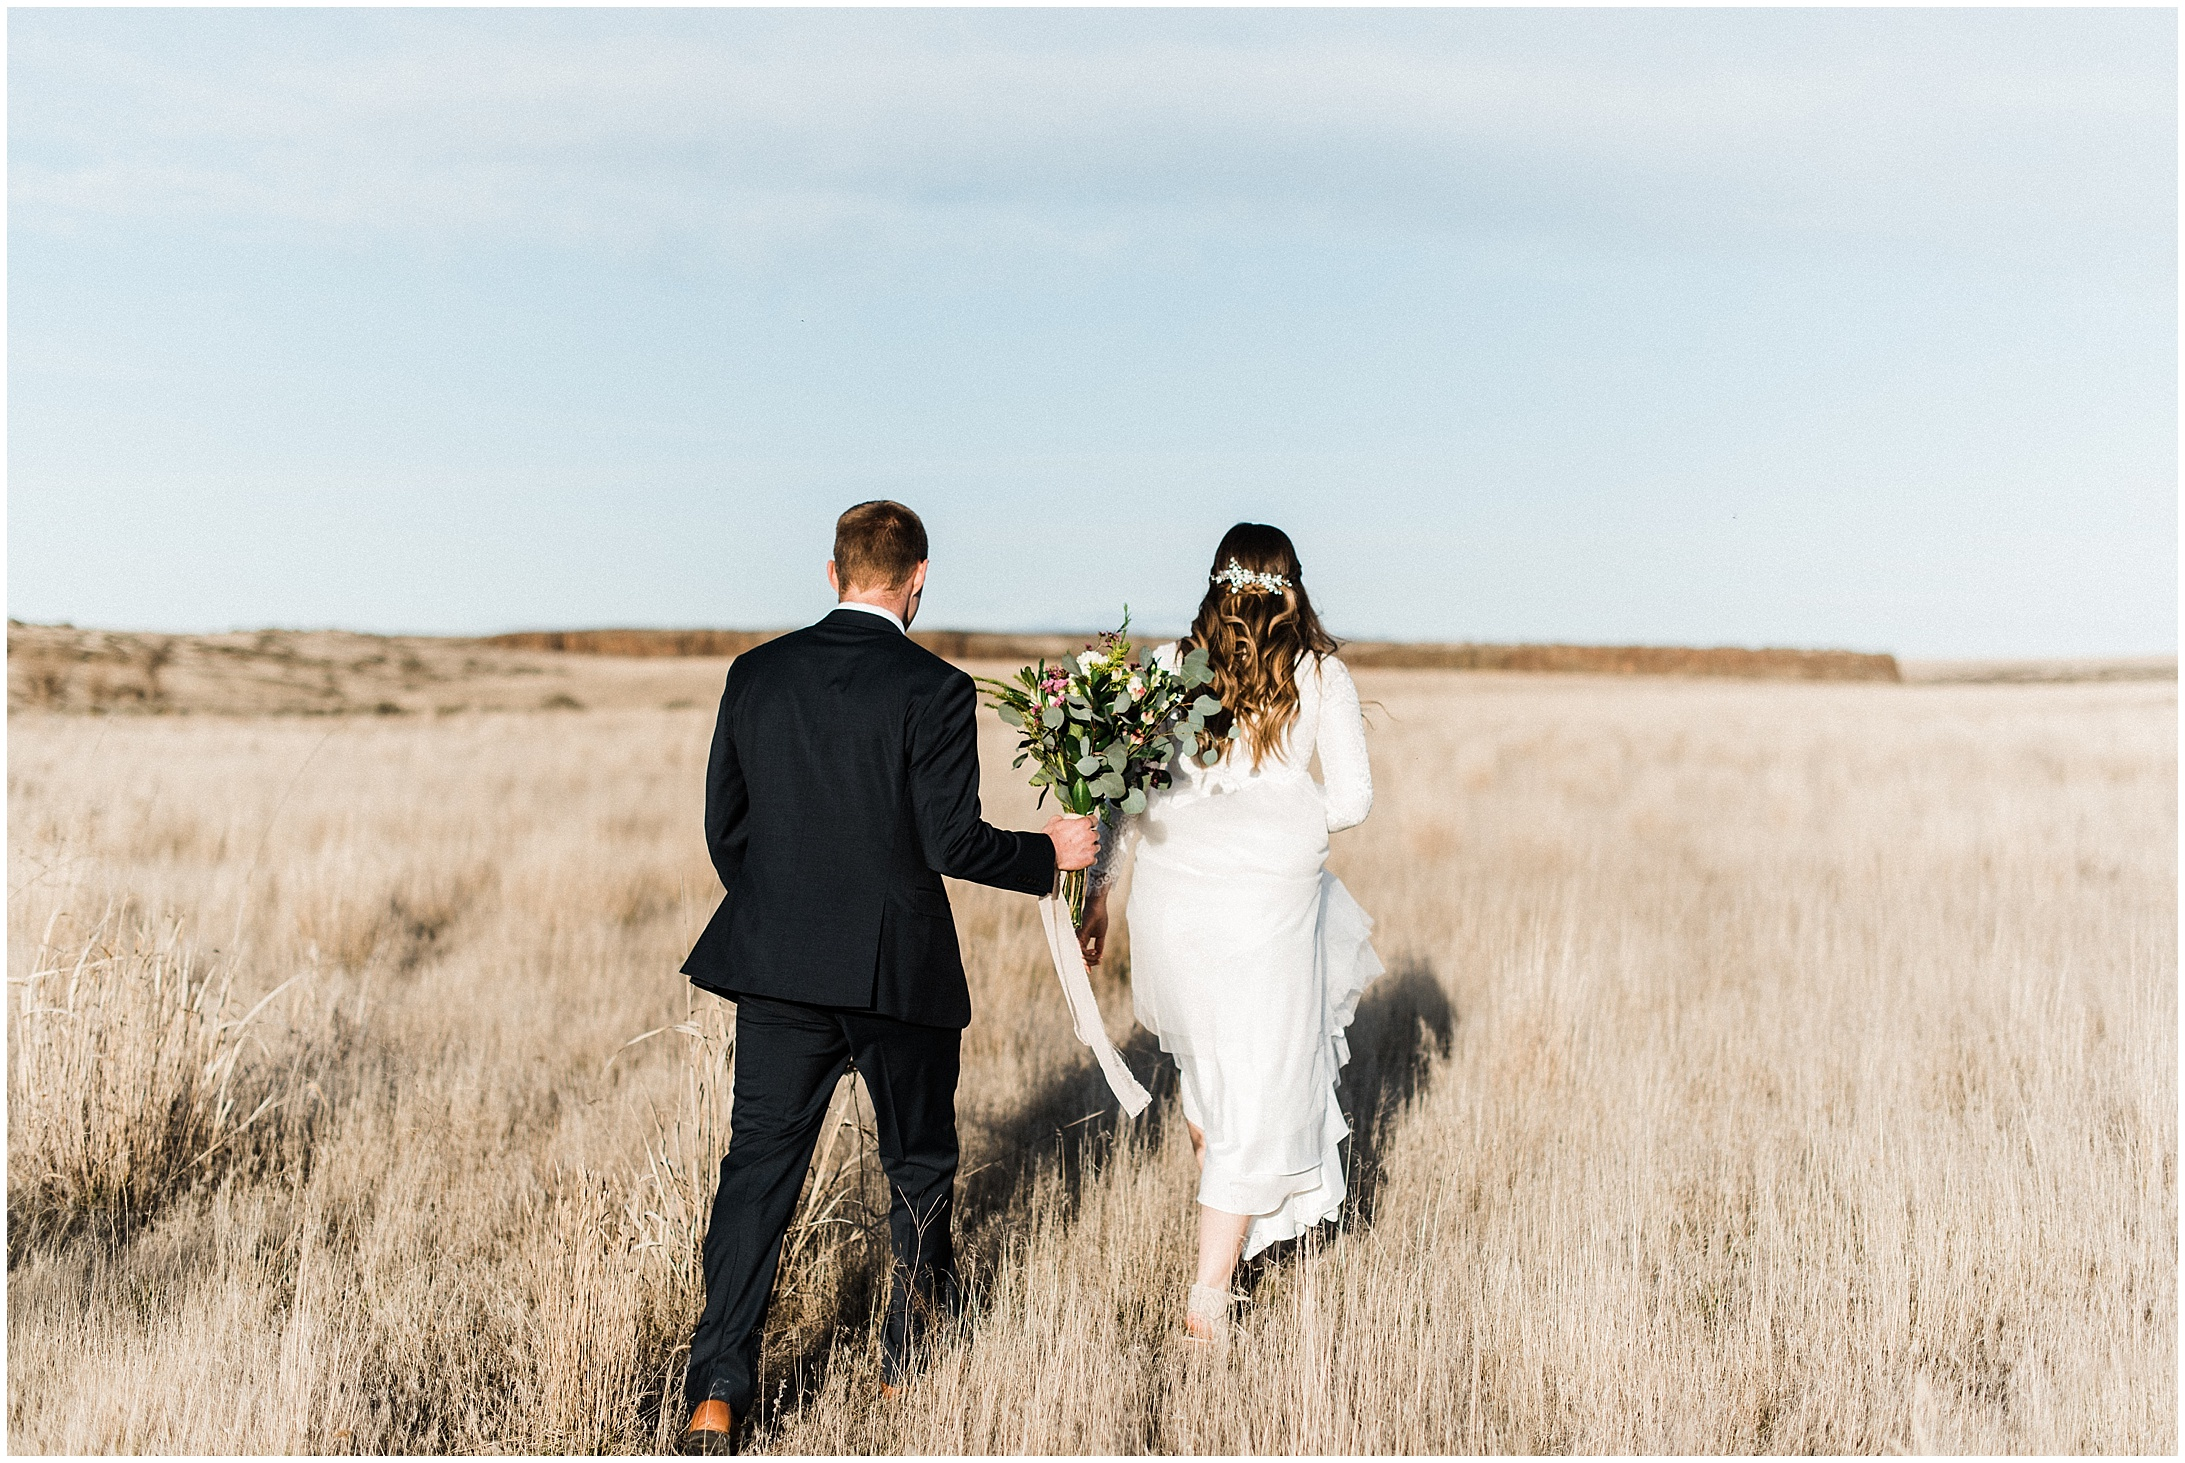 Photo of a bride & groom walking through a field by Forthright Photo